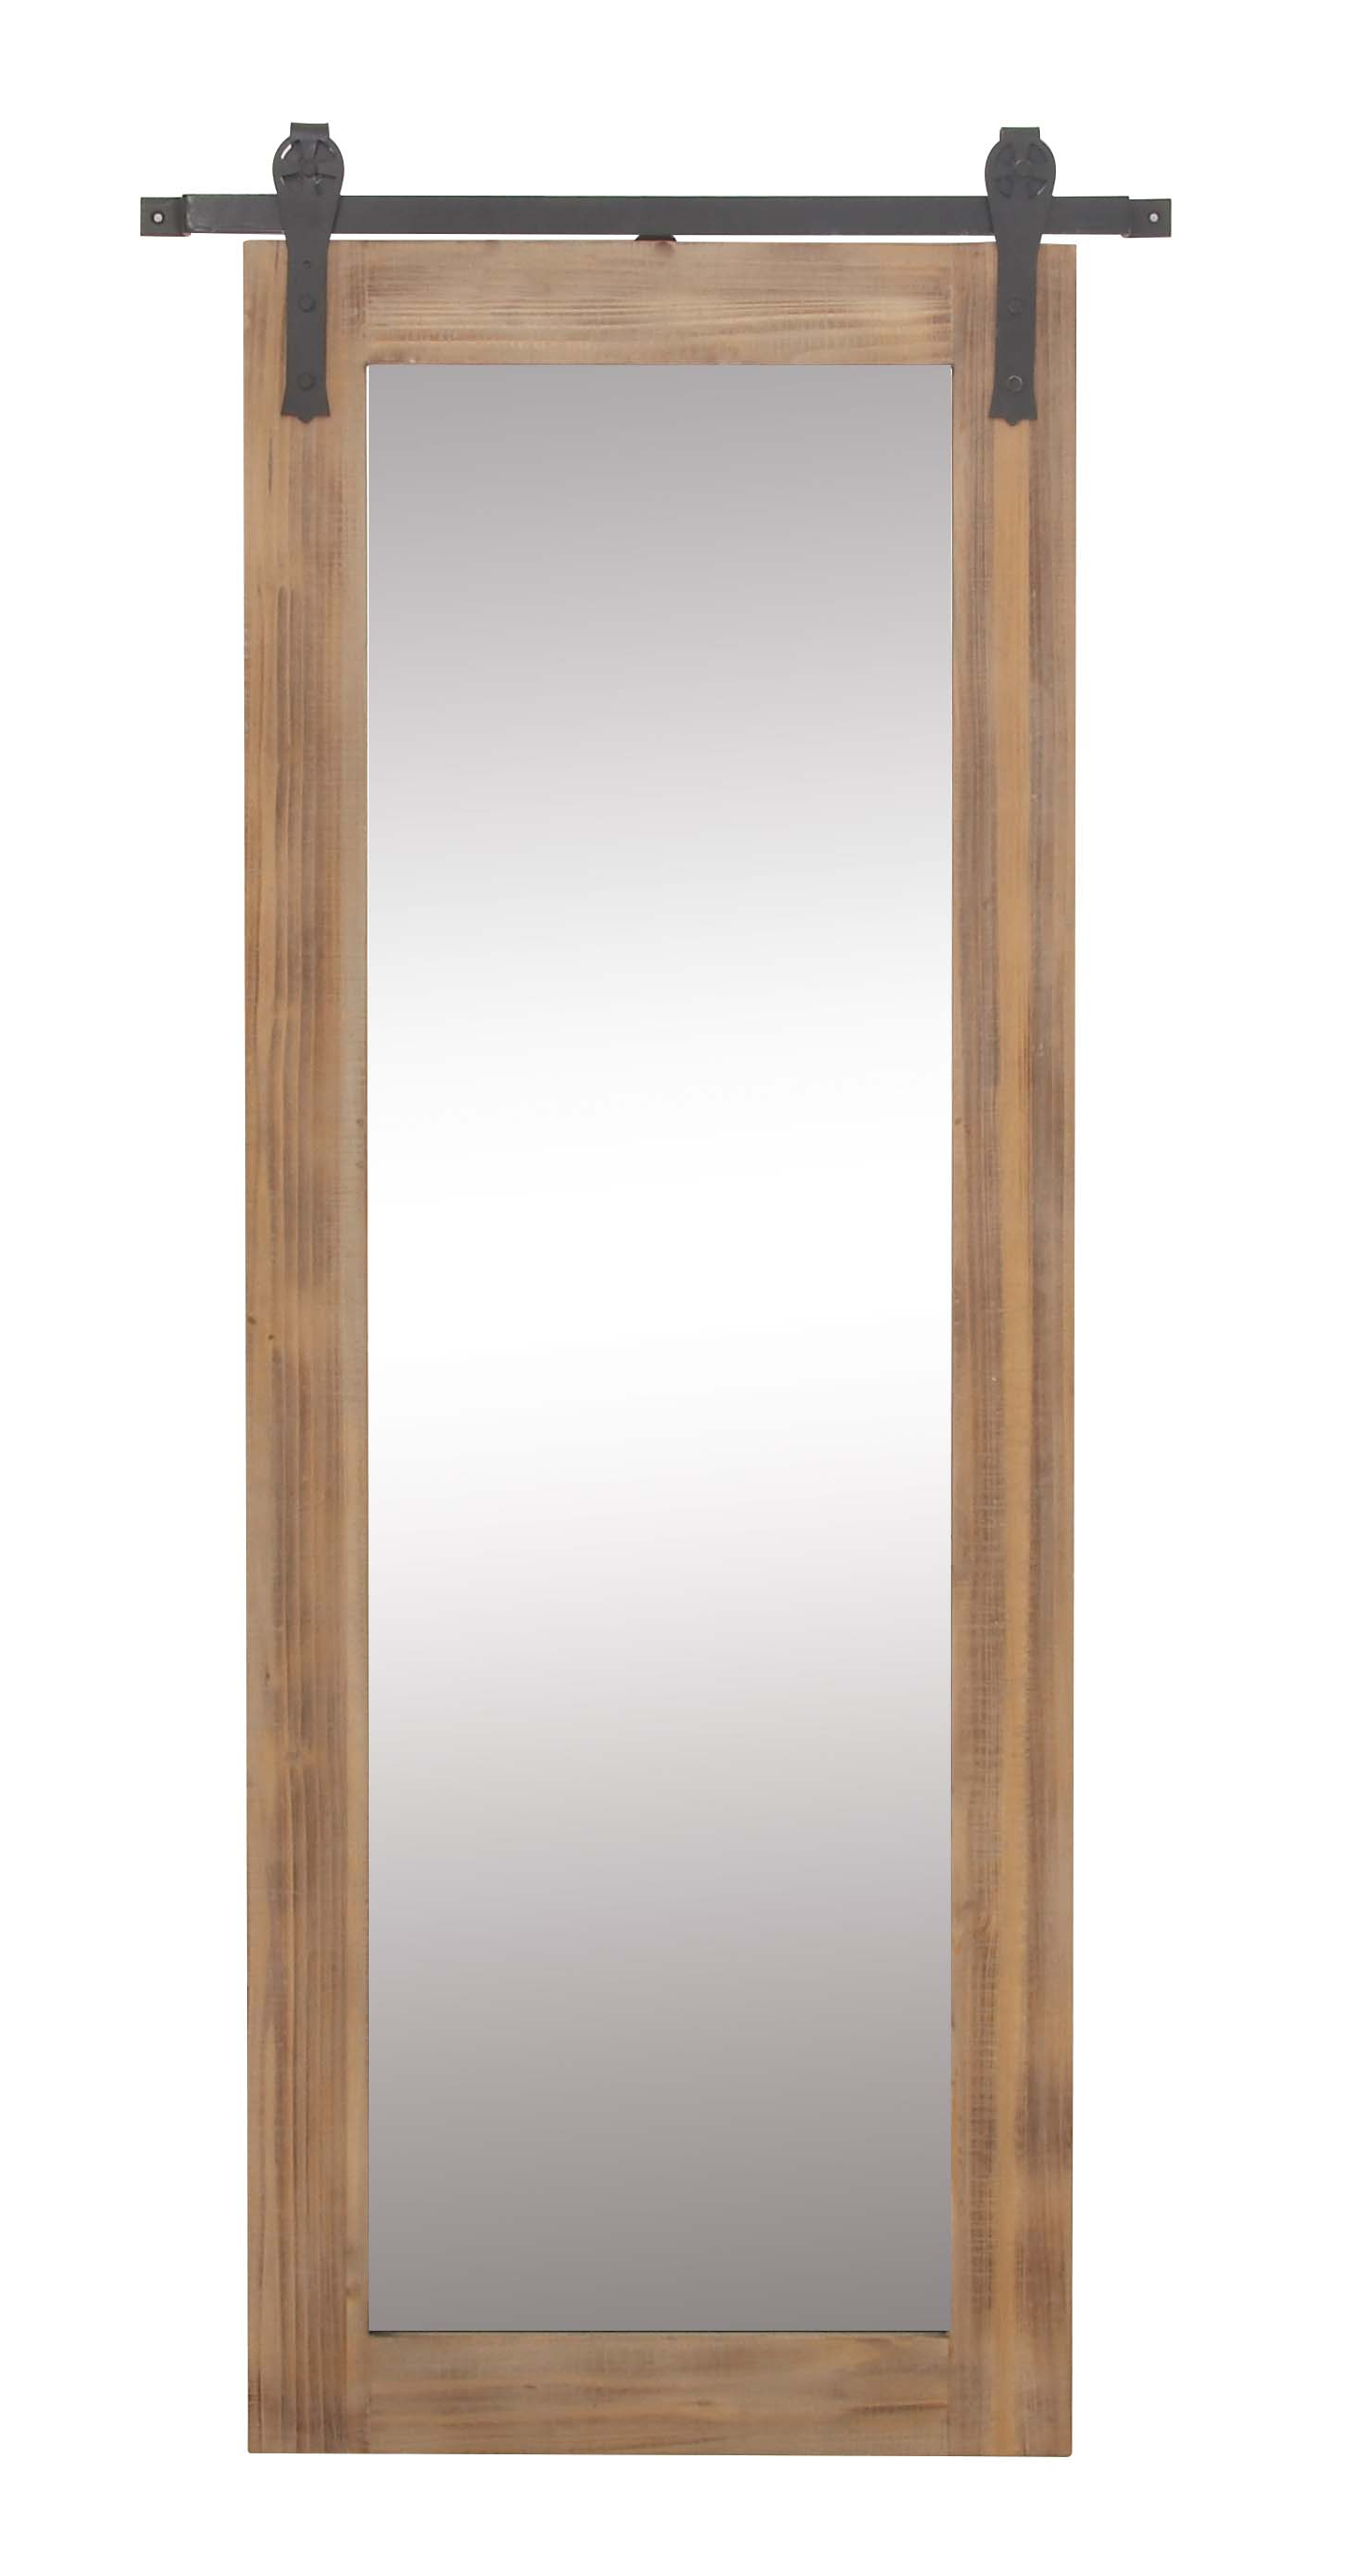 Brown Wall Mirrors Pertaining To Trendy Decmode Farmhouse 70 X 32 Inch Rectangular Wooden Framed Wall Mirror With Metal Wall Brackets, Brown (View 7 of 20)